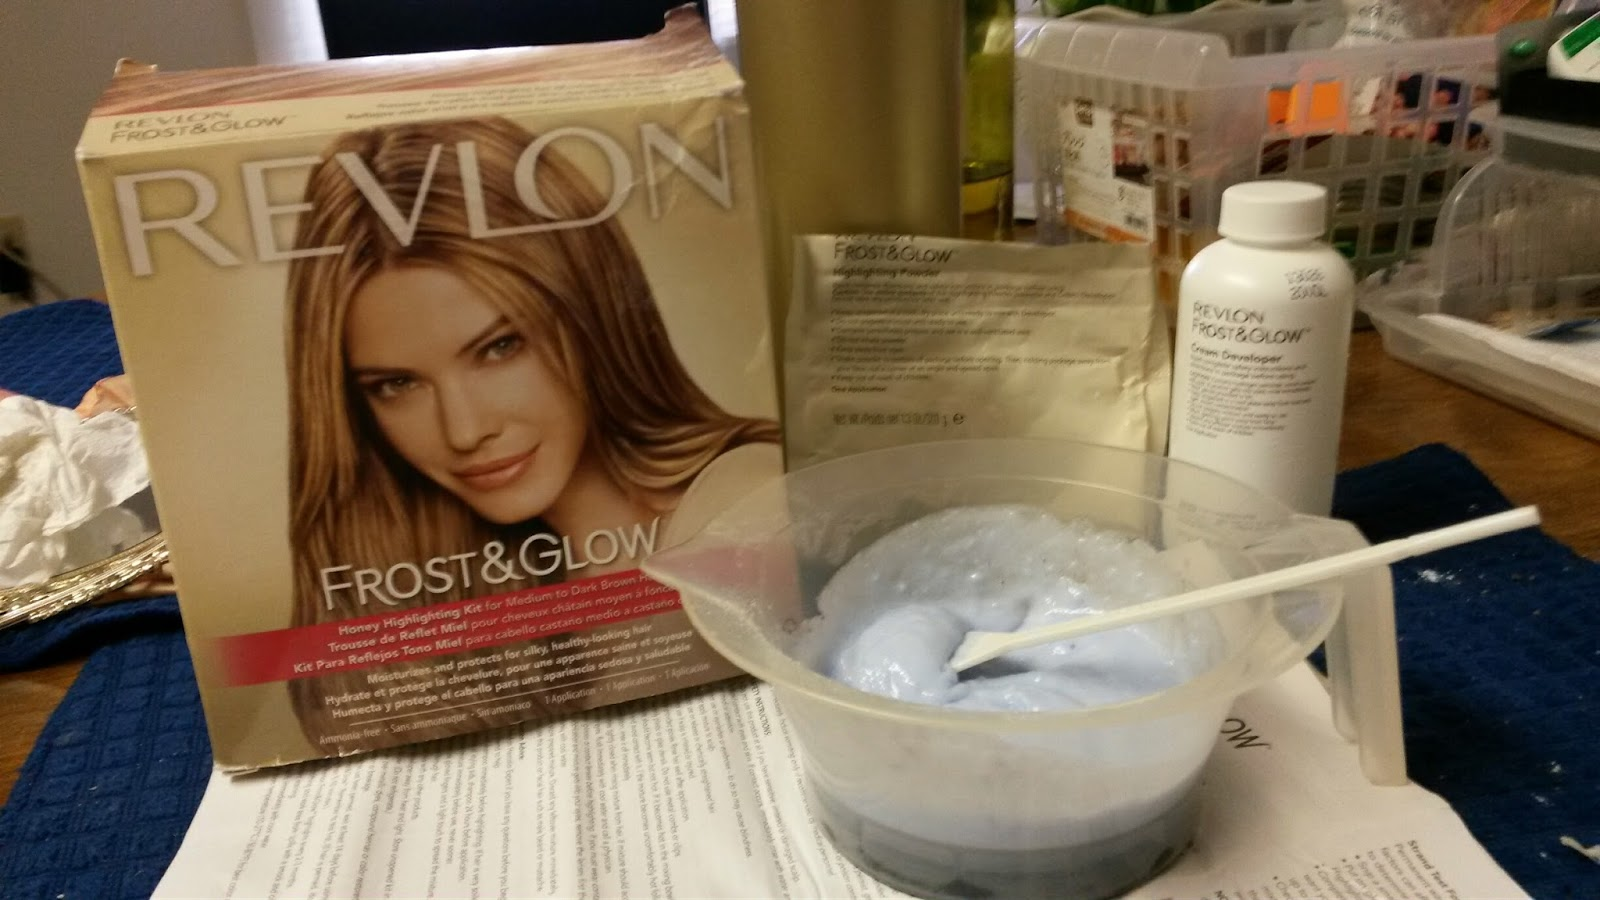 To Save On Hair Streaks Or Highlight, It Would Be Better To Do It Yourself  By Using Revlon Frost U0026 Glow. Although The Box Instructions Would Say Mix  The ...